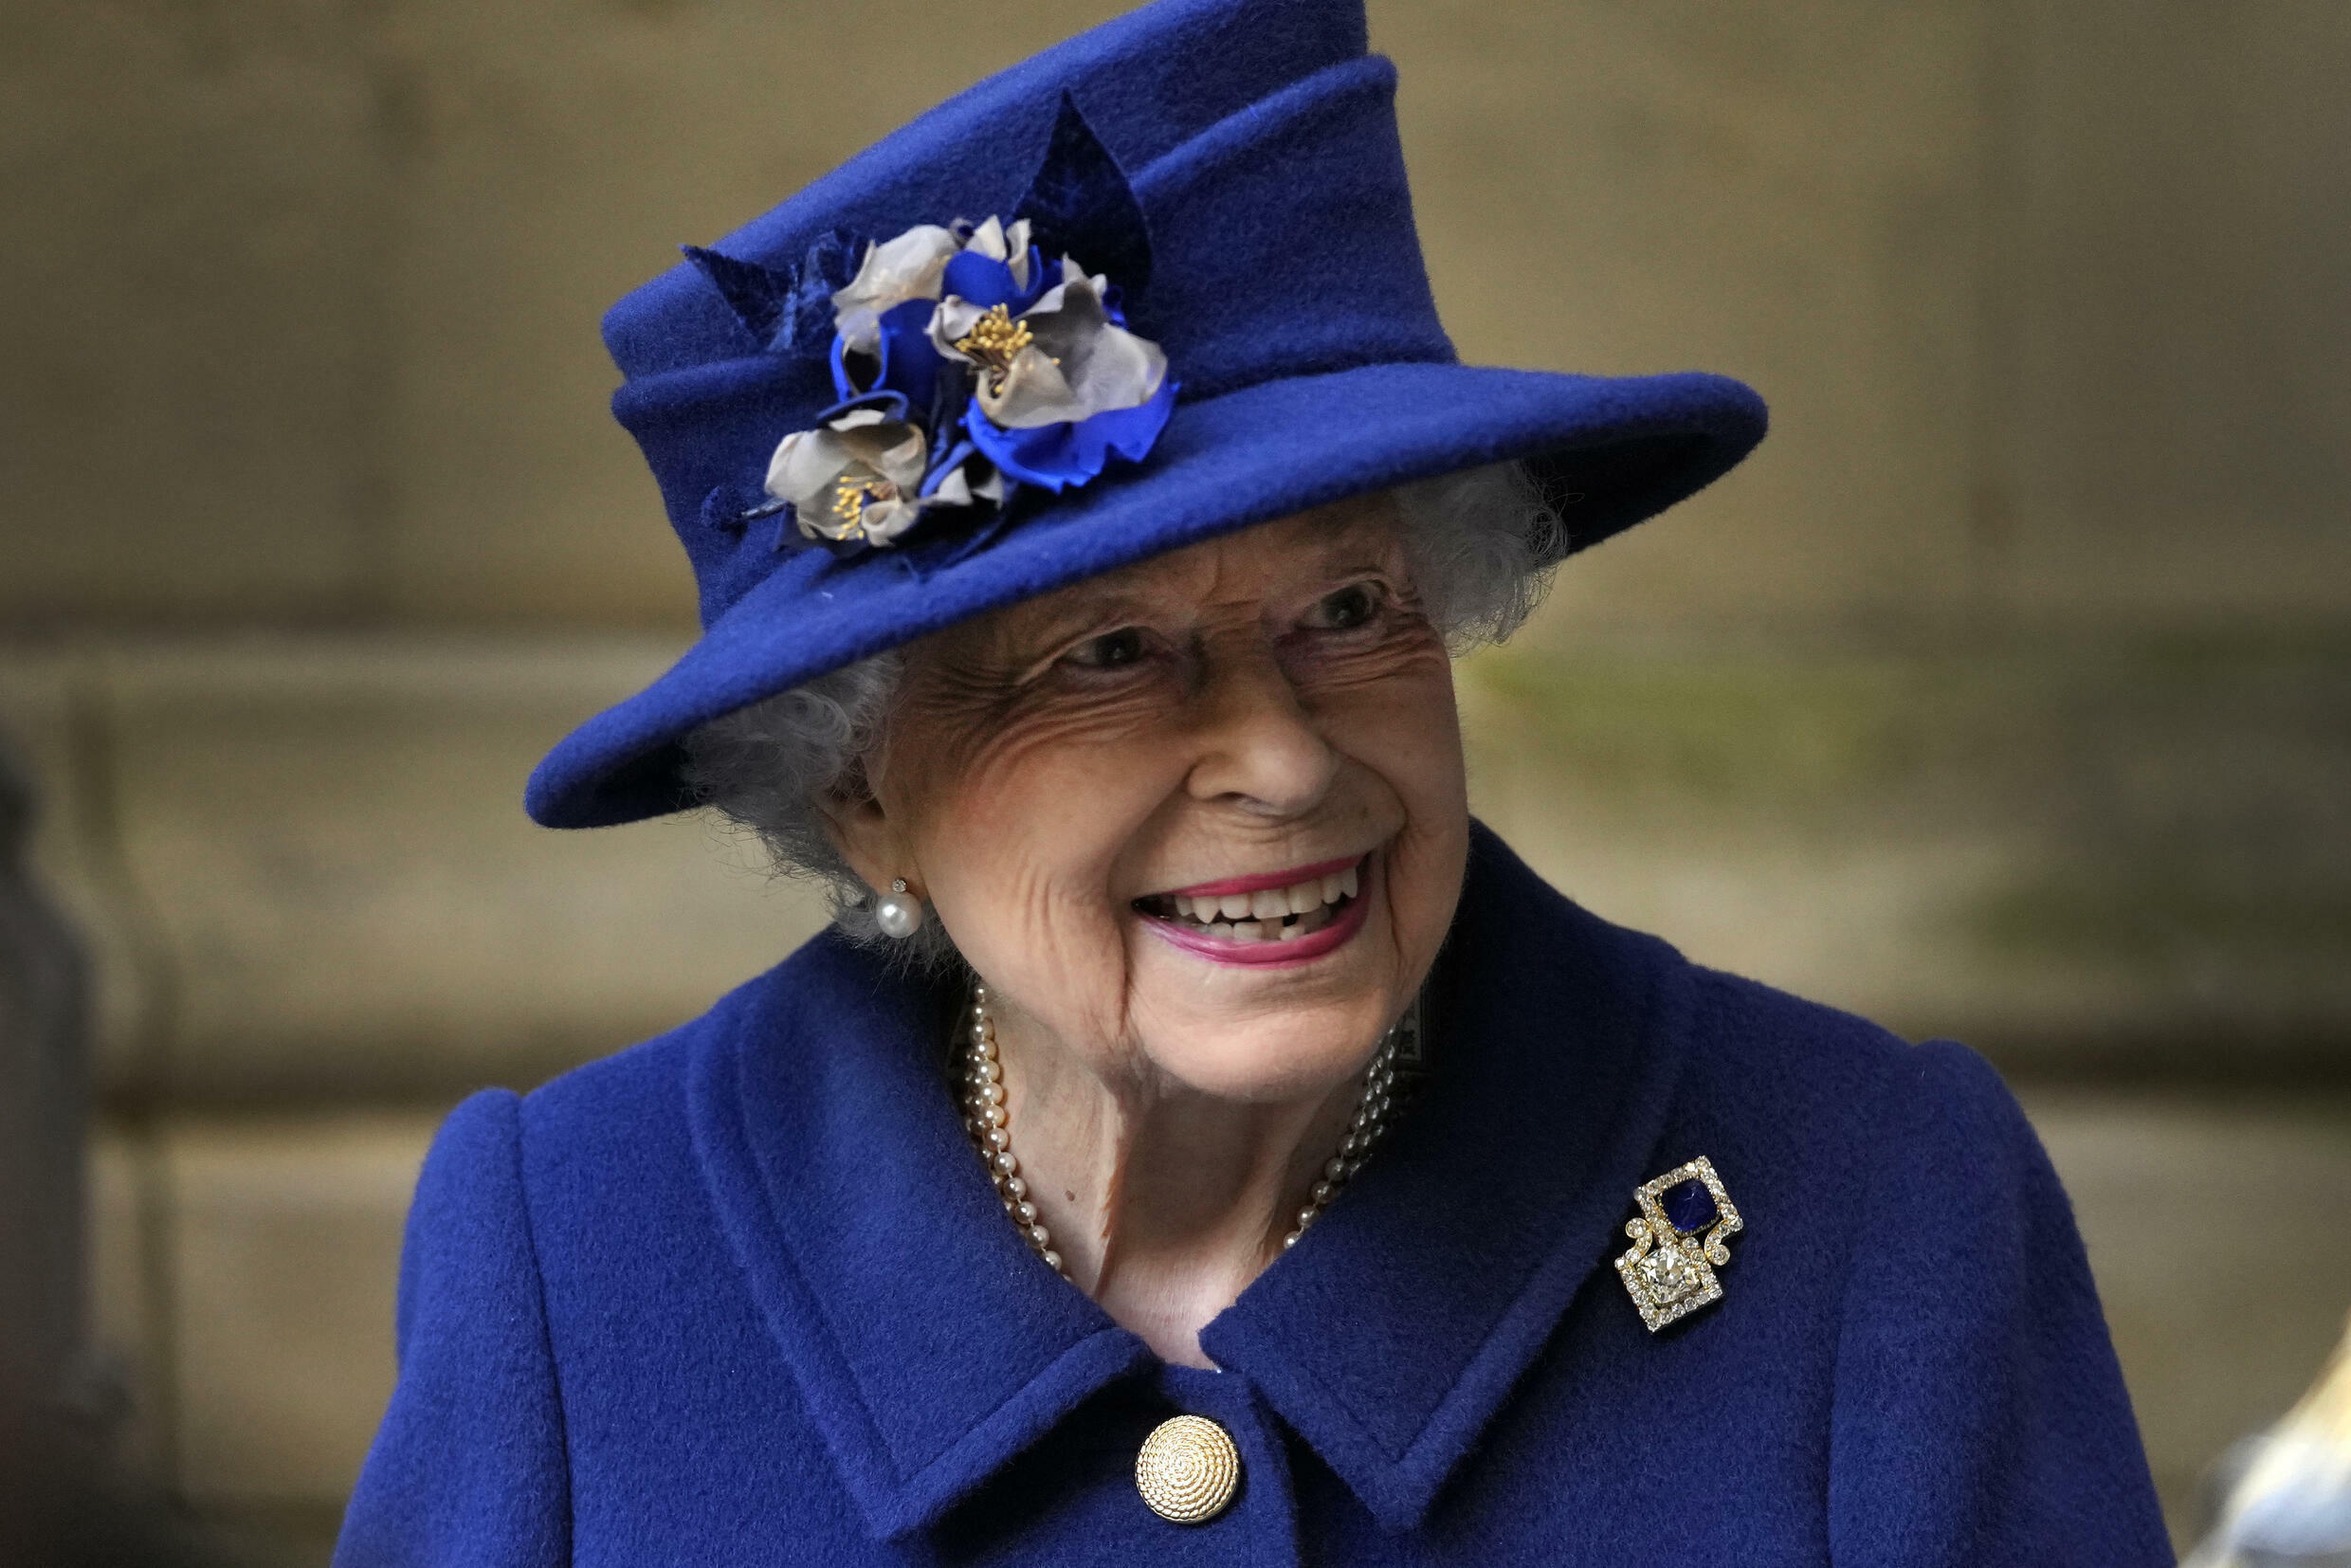 Britain's Queen Elizabeth II, pictured on October 12, 2021, was said already to be back at her desk and undertaking light duties, after spending the night in hospital